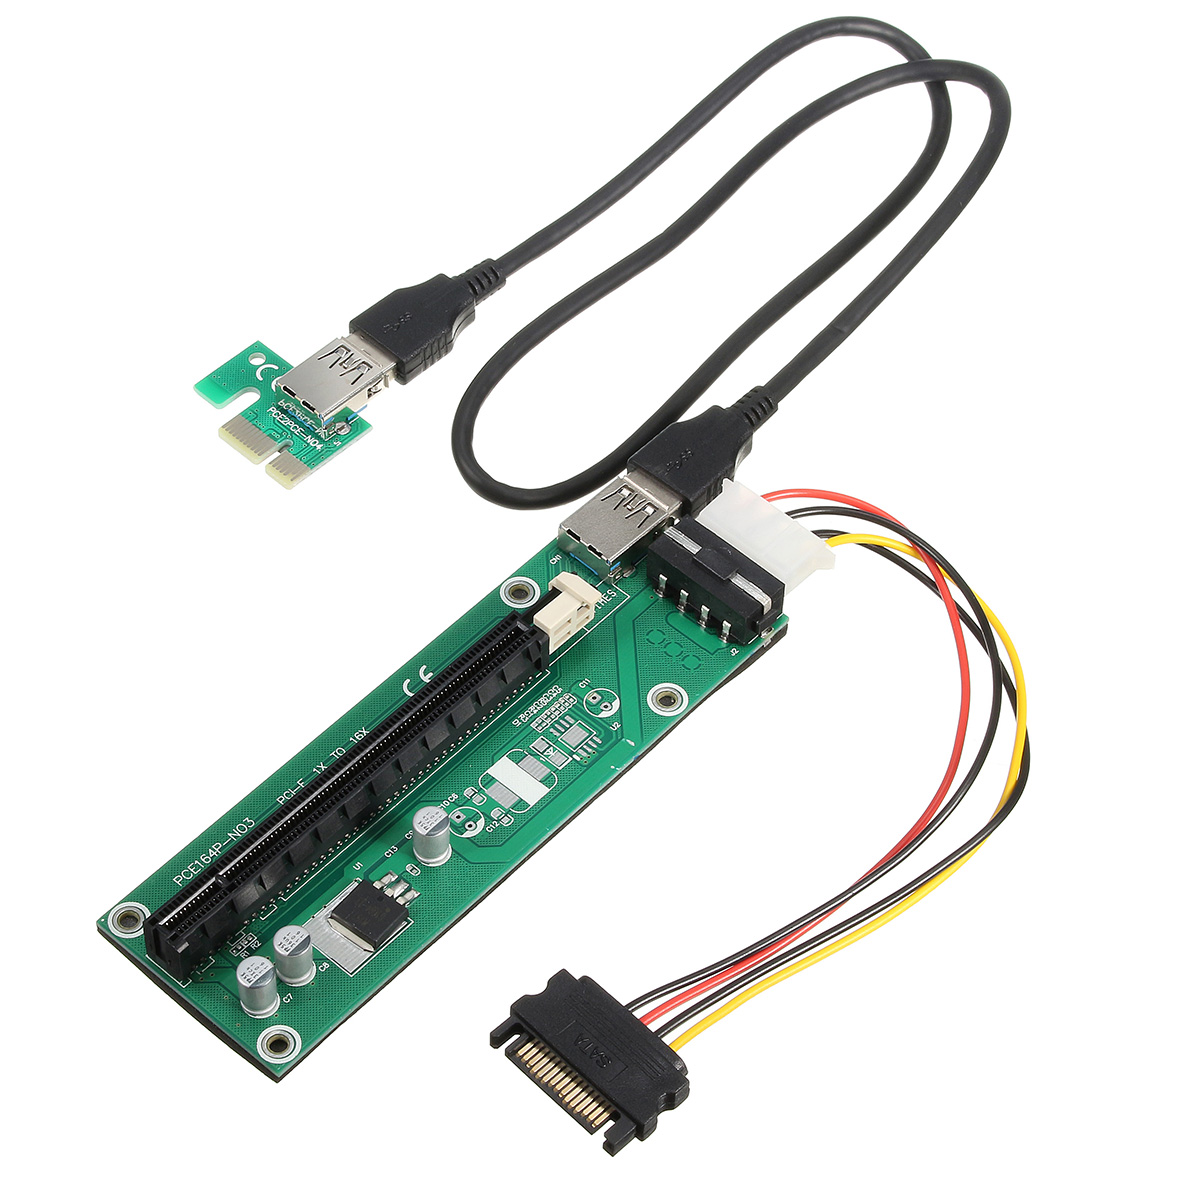 USB 3.0 PCI-E Express 1x to16x Extension Cable Extender Riser Board Card Adapter SATA Cable